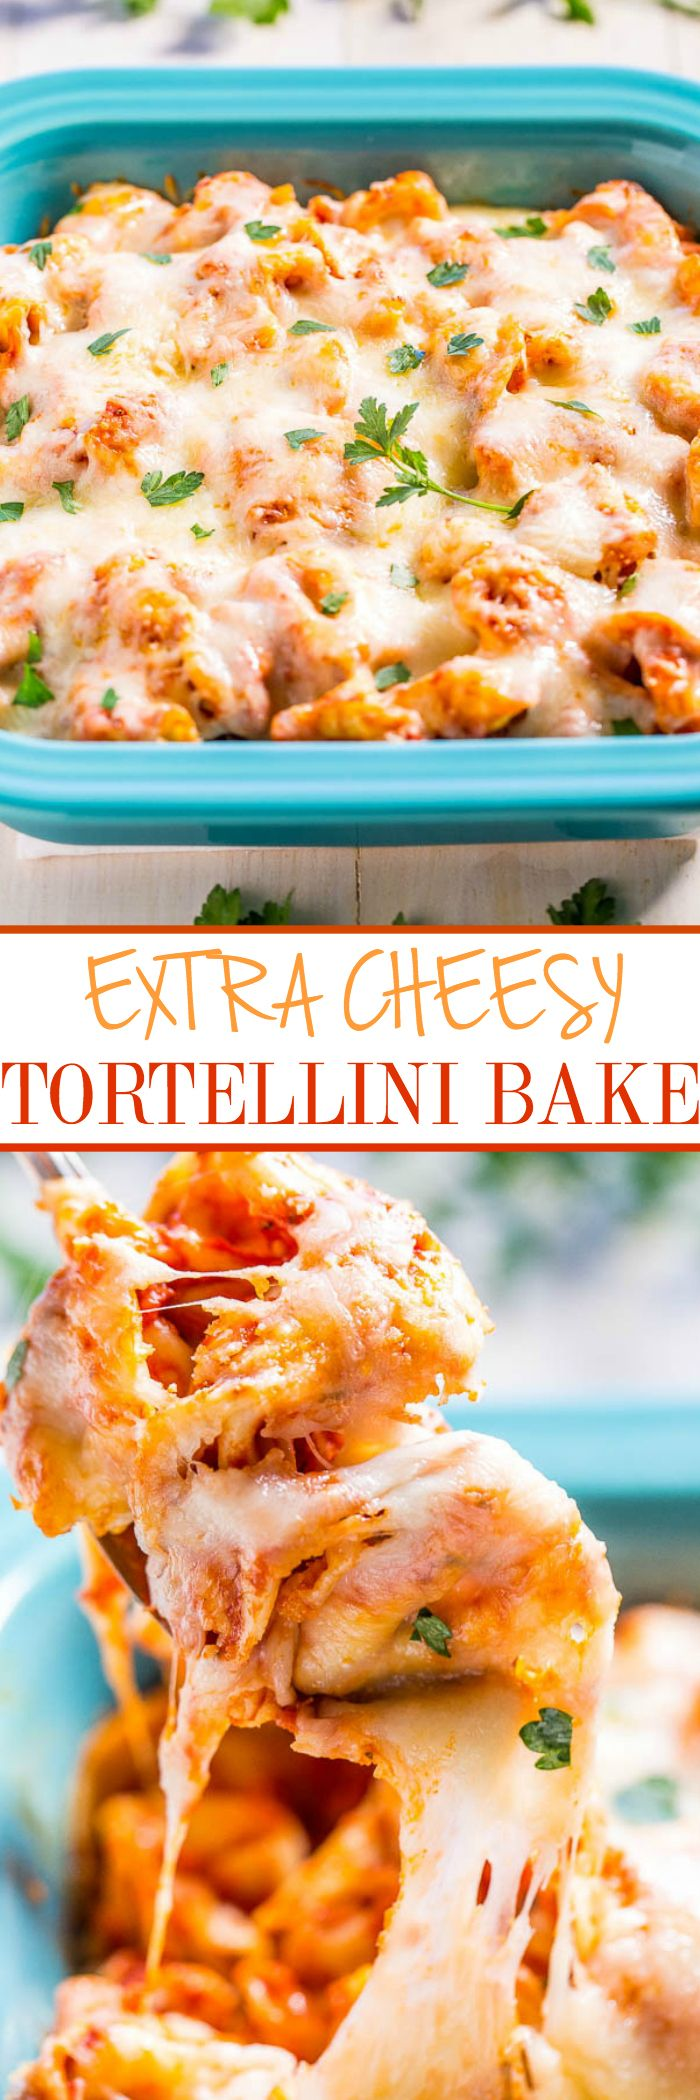 Easy sauce recipes for tortellini